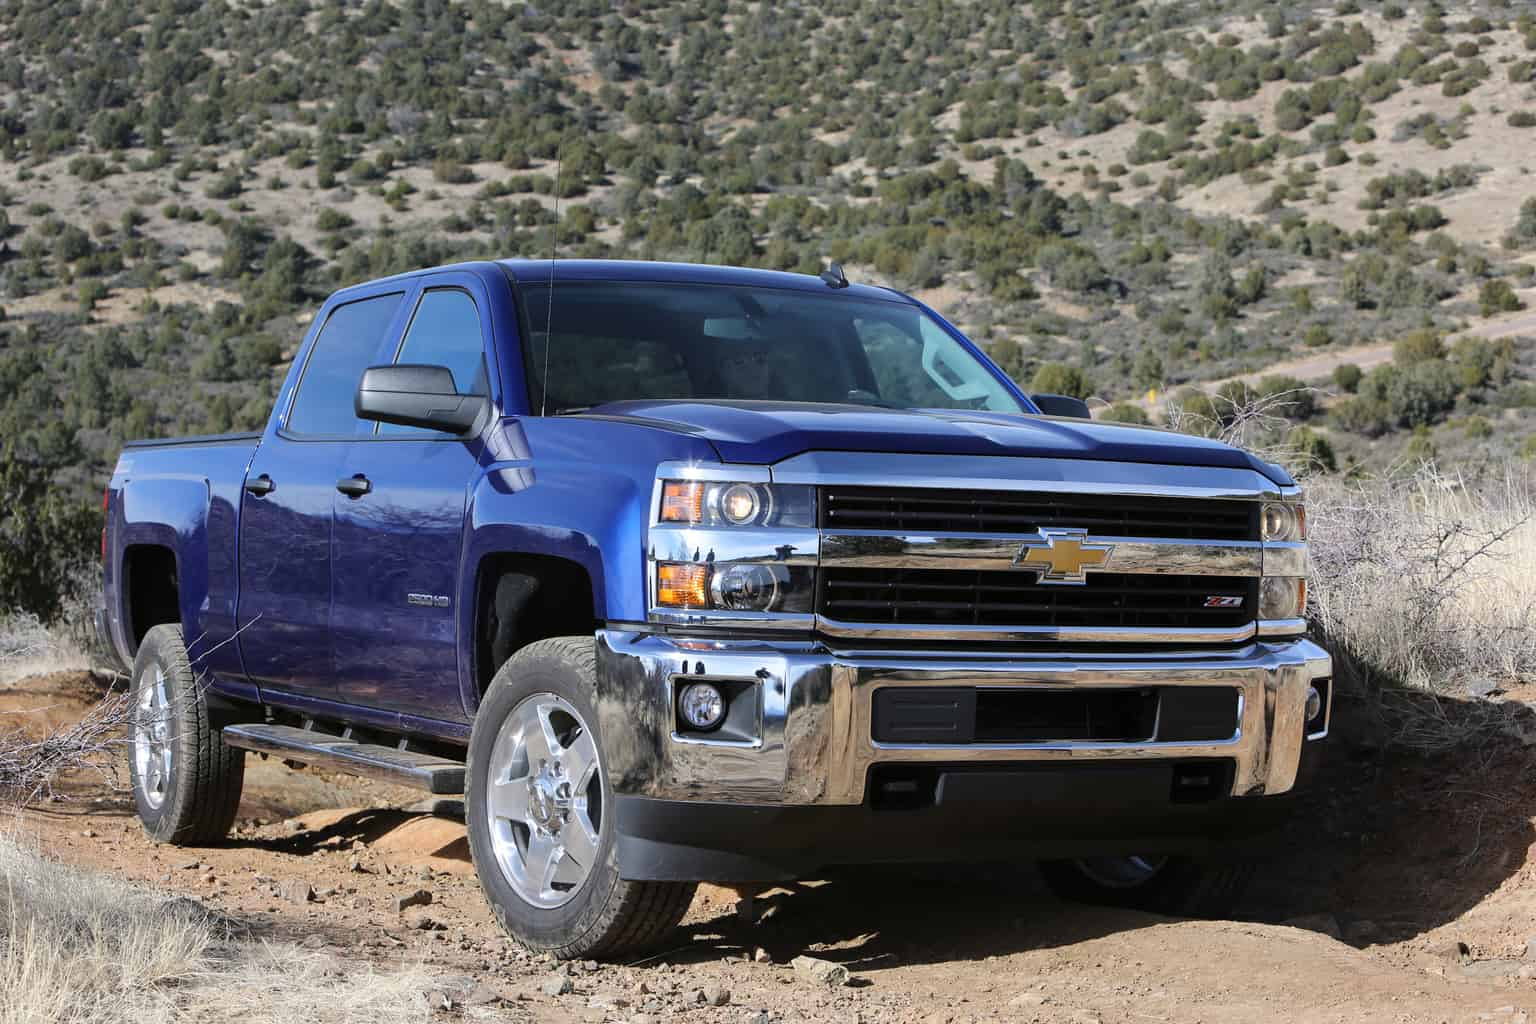 2015 Chevy Silverado 2500 Duramax Diesel Review And Test Drive Carprousa